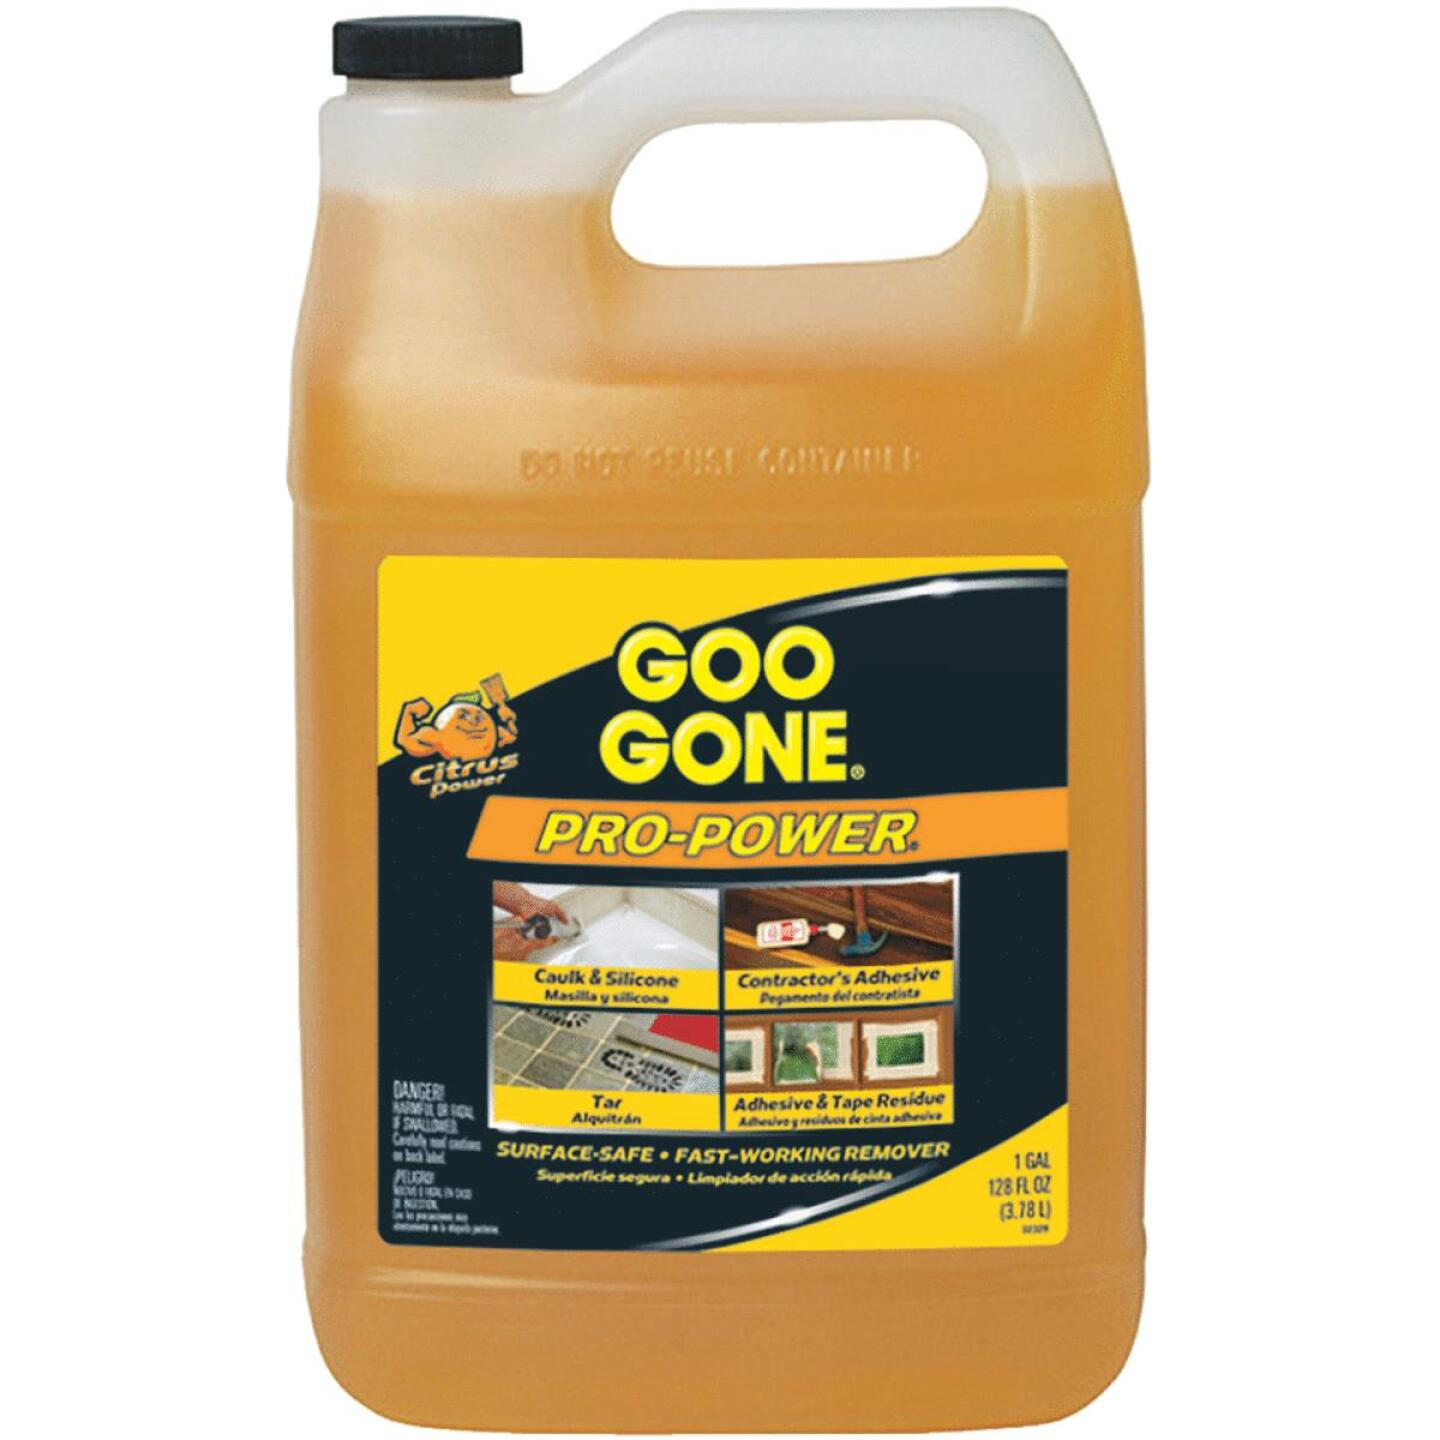 Goo Gone 1 Gal. Pro-Power Adhesive Remover Image 210